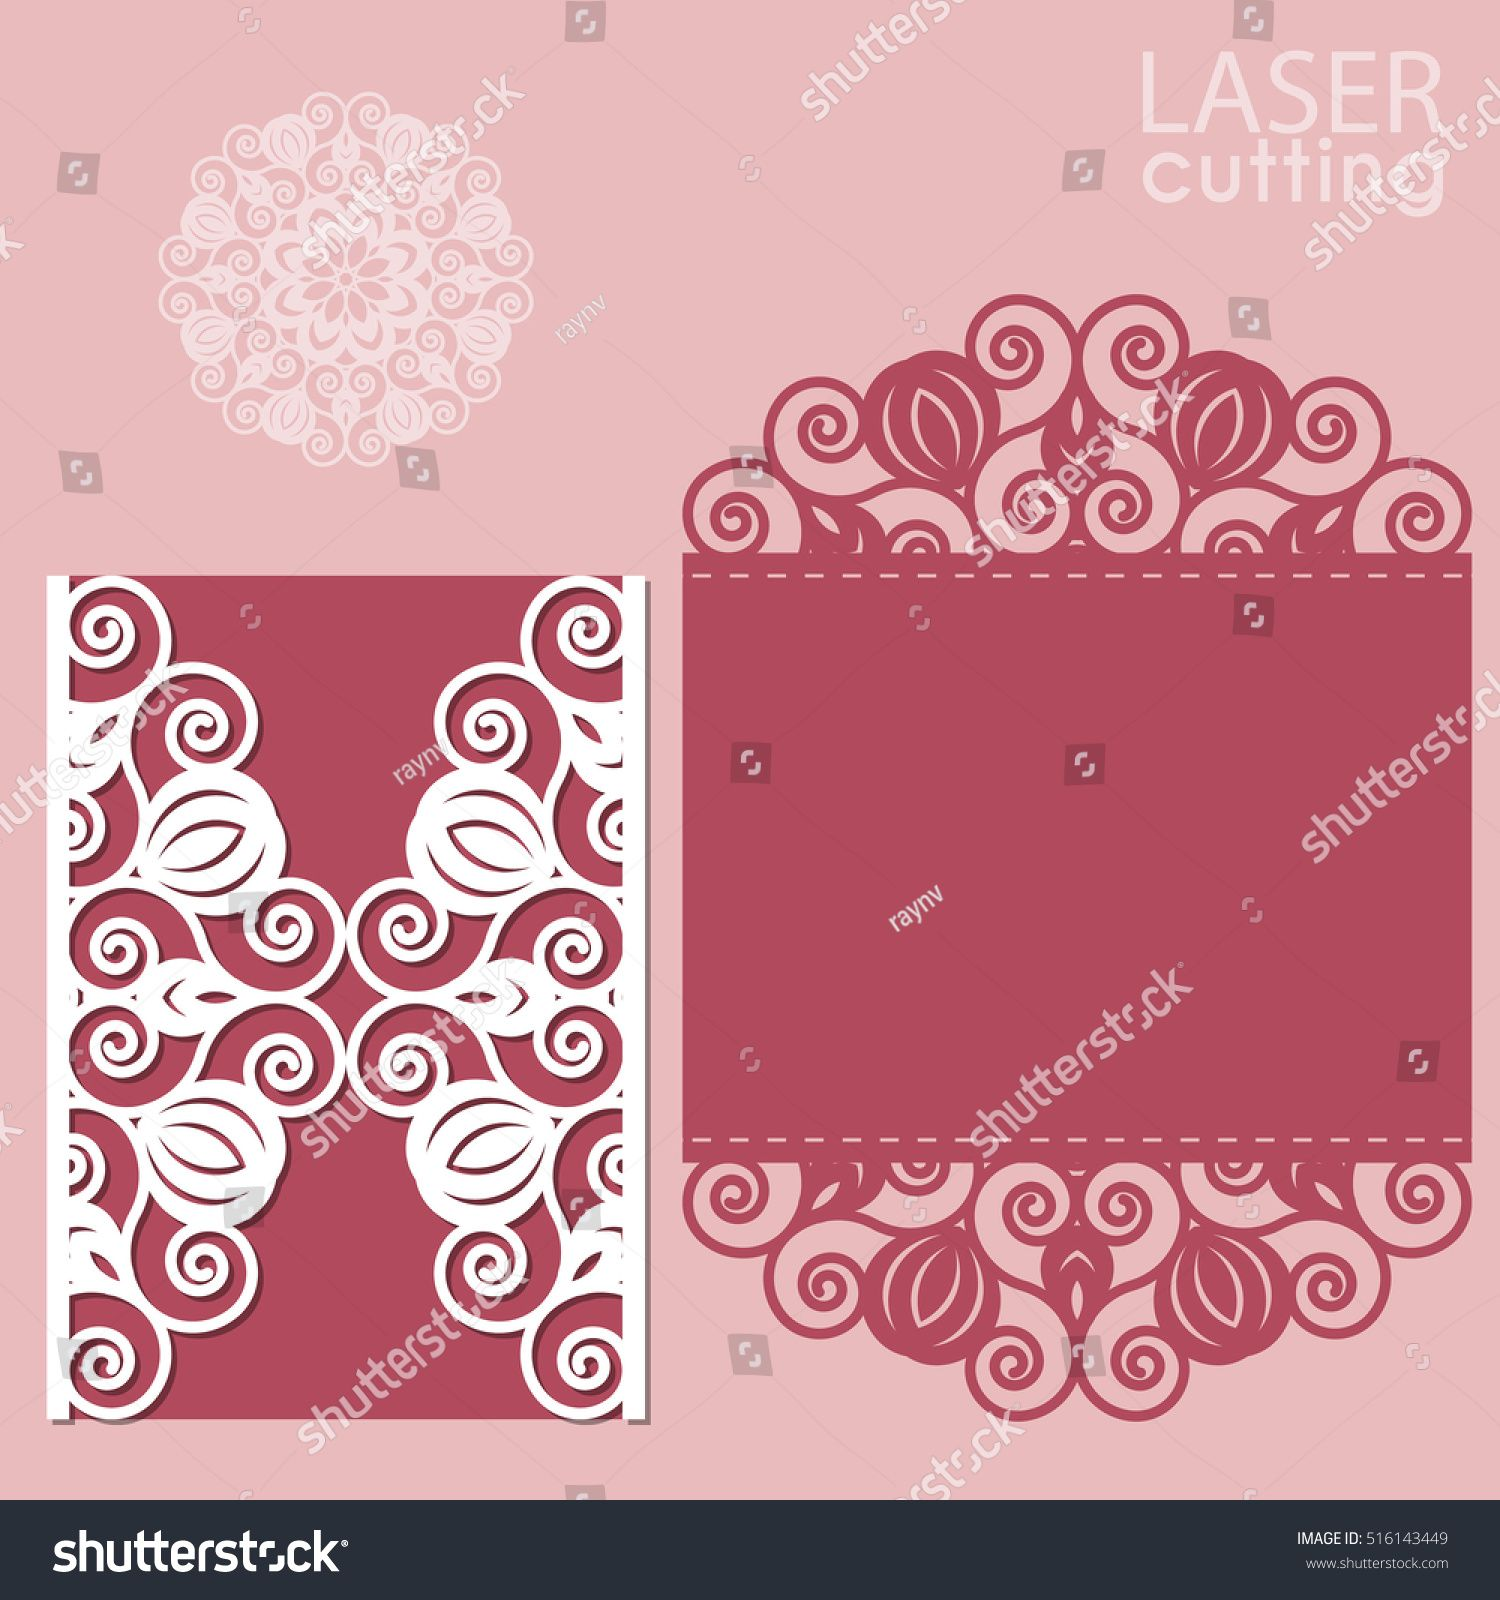 Laser cut wedding invitation card template vector. Die cut paper ...